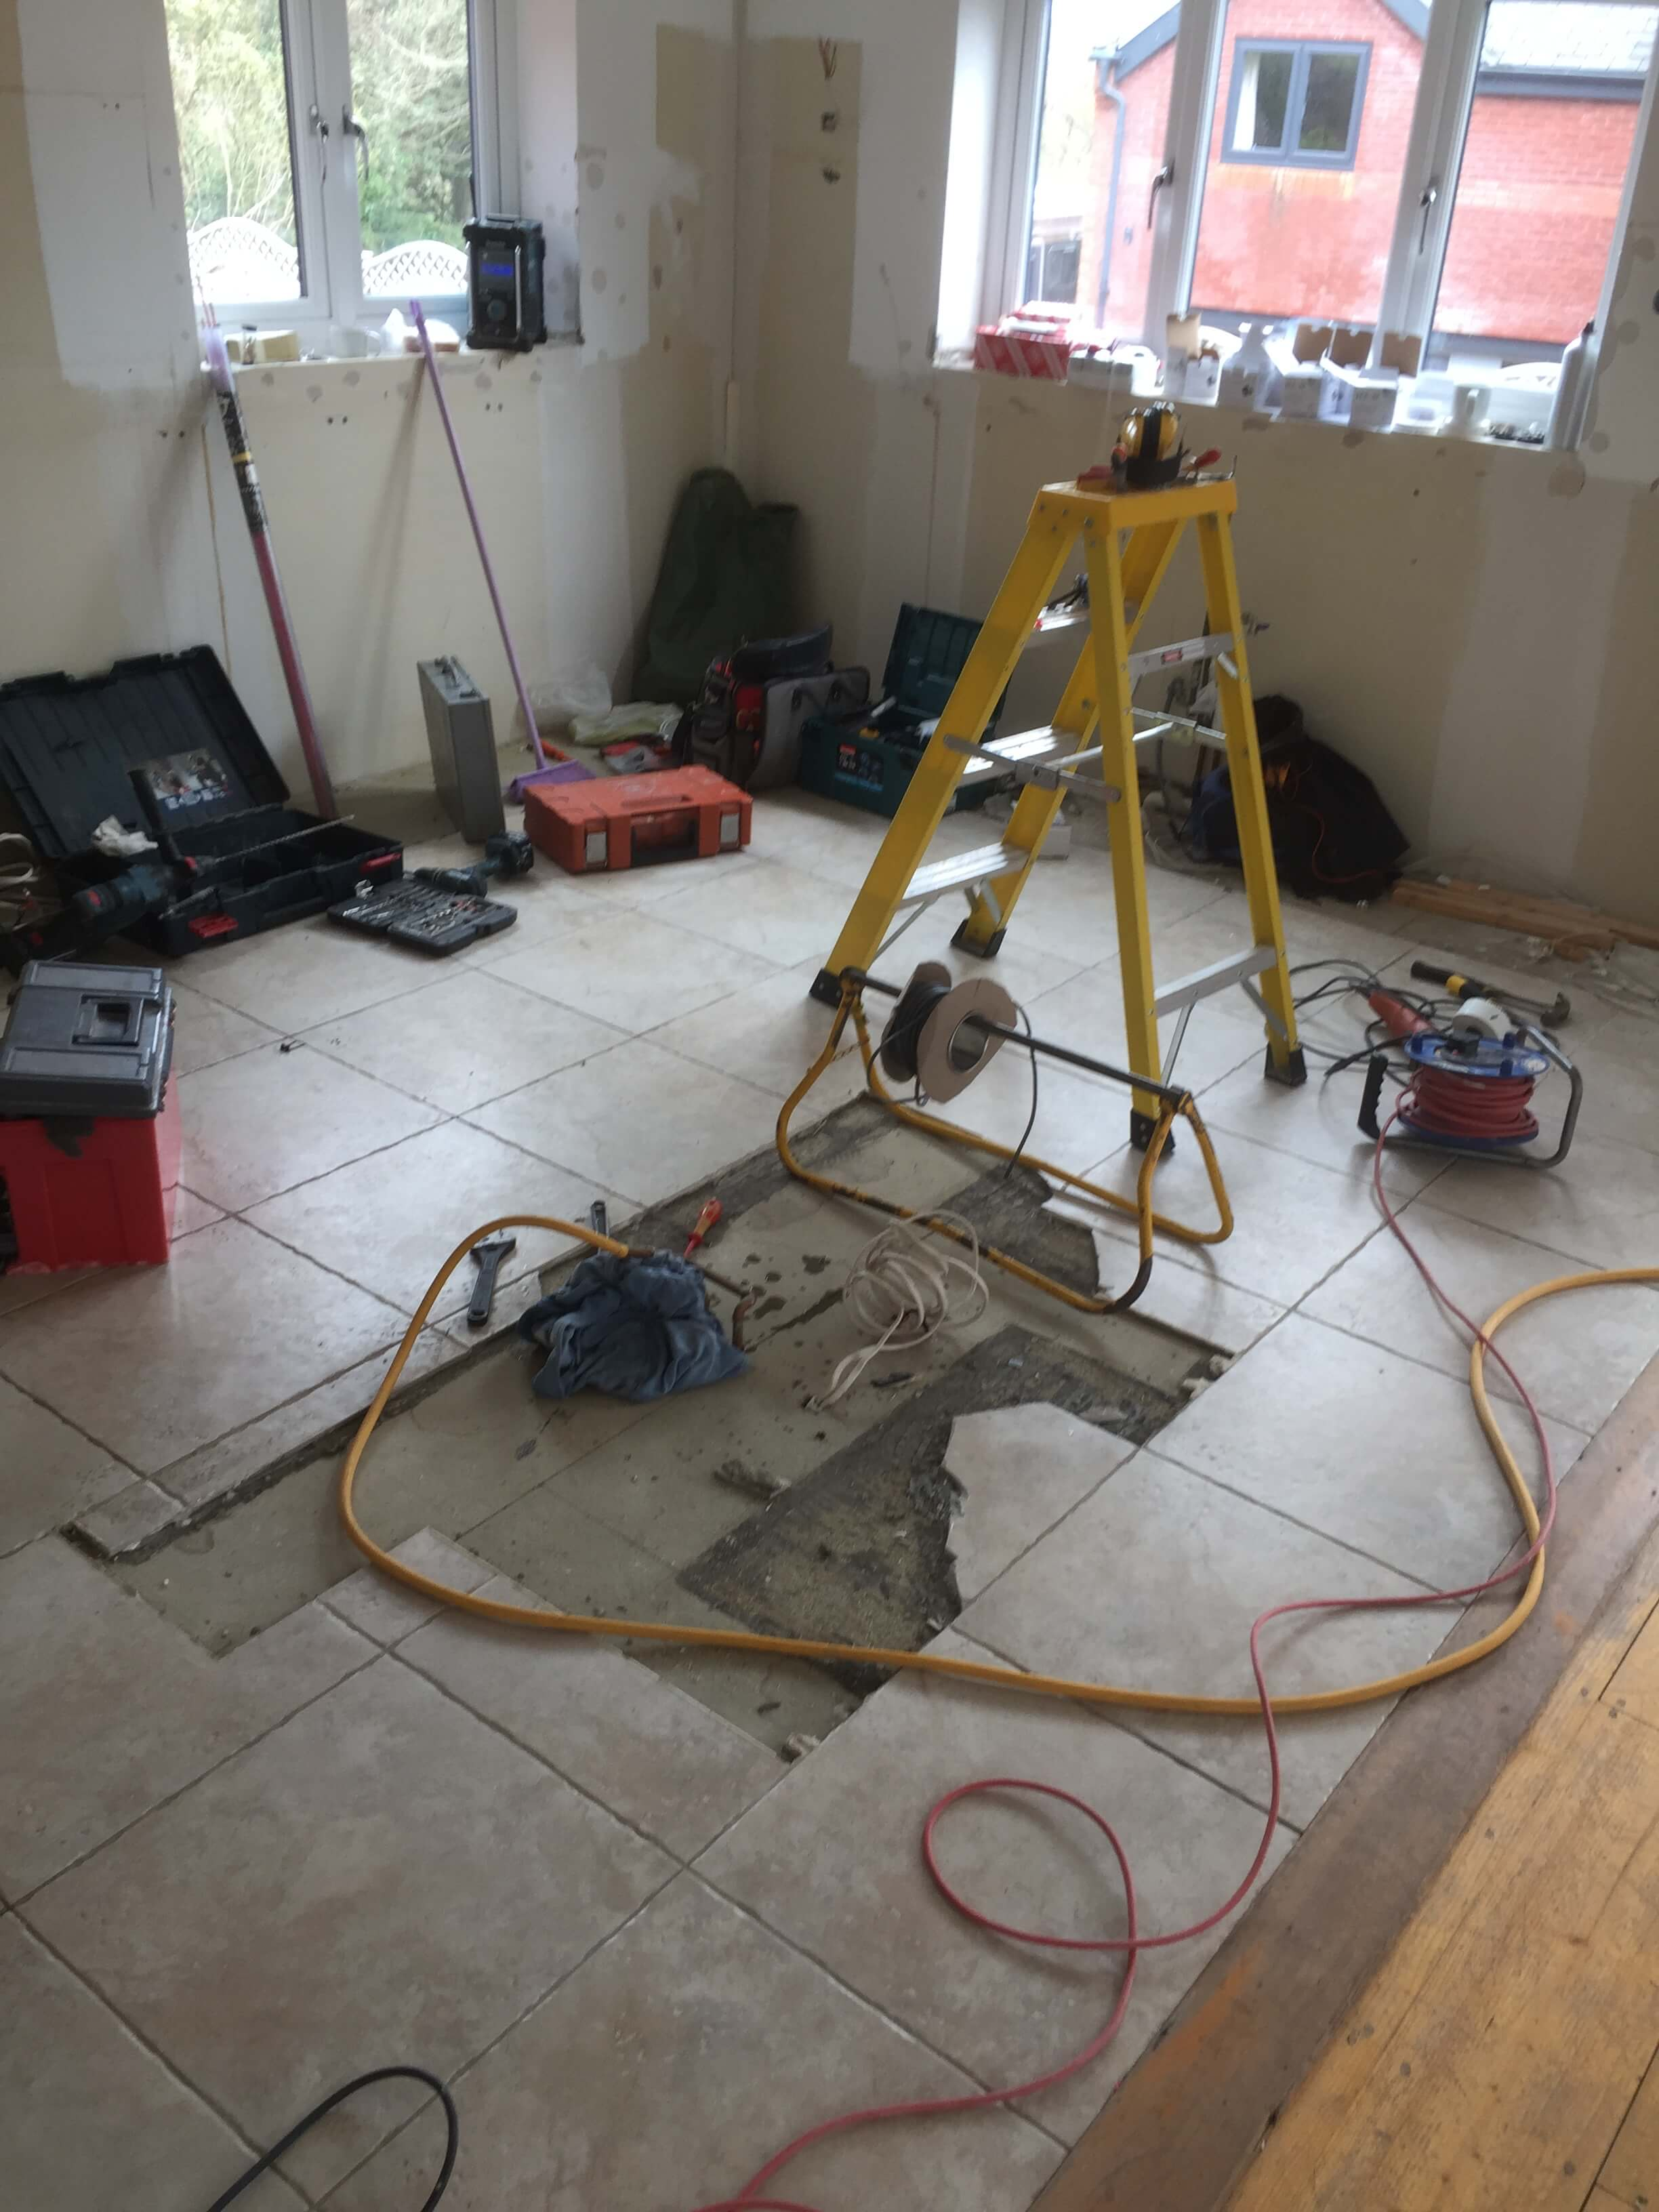 Tiles being removed